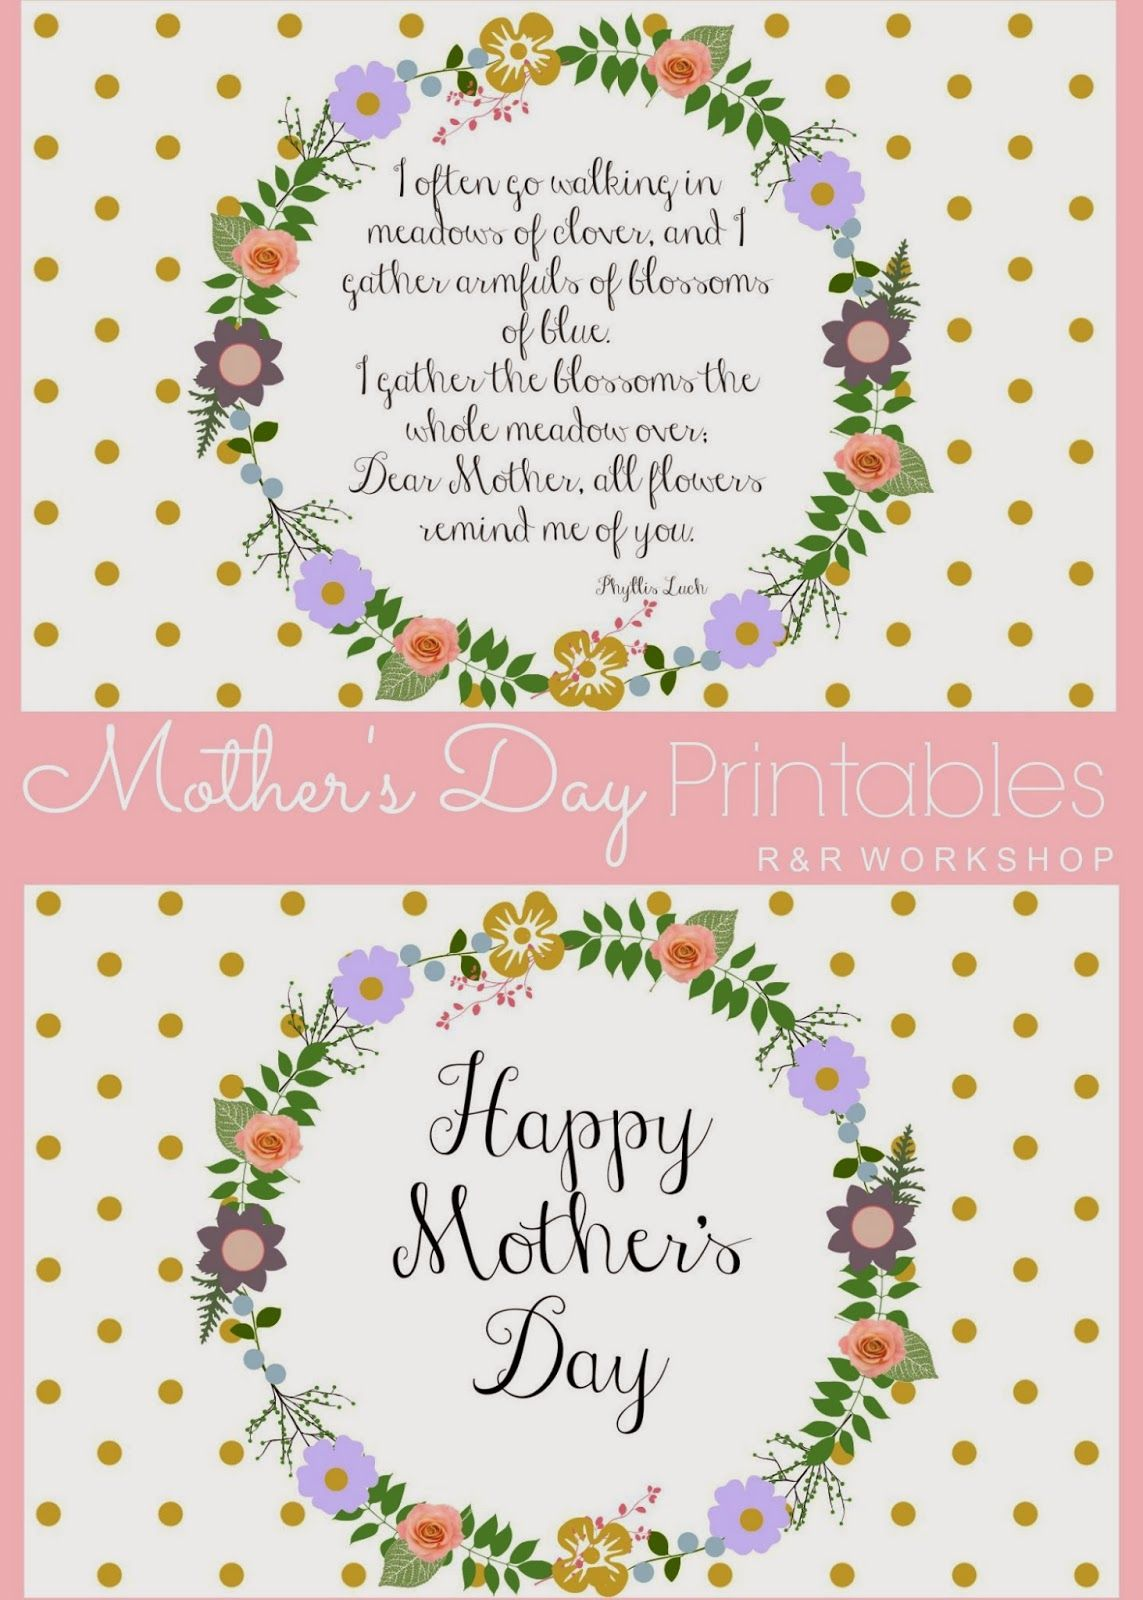 Mothers day coloring sheets for sunday school - I Often Go Walking Print And Mother S Day Printables